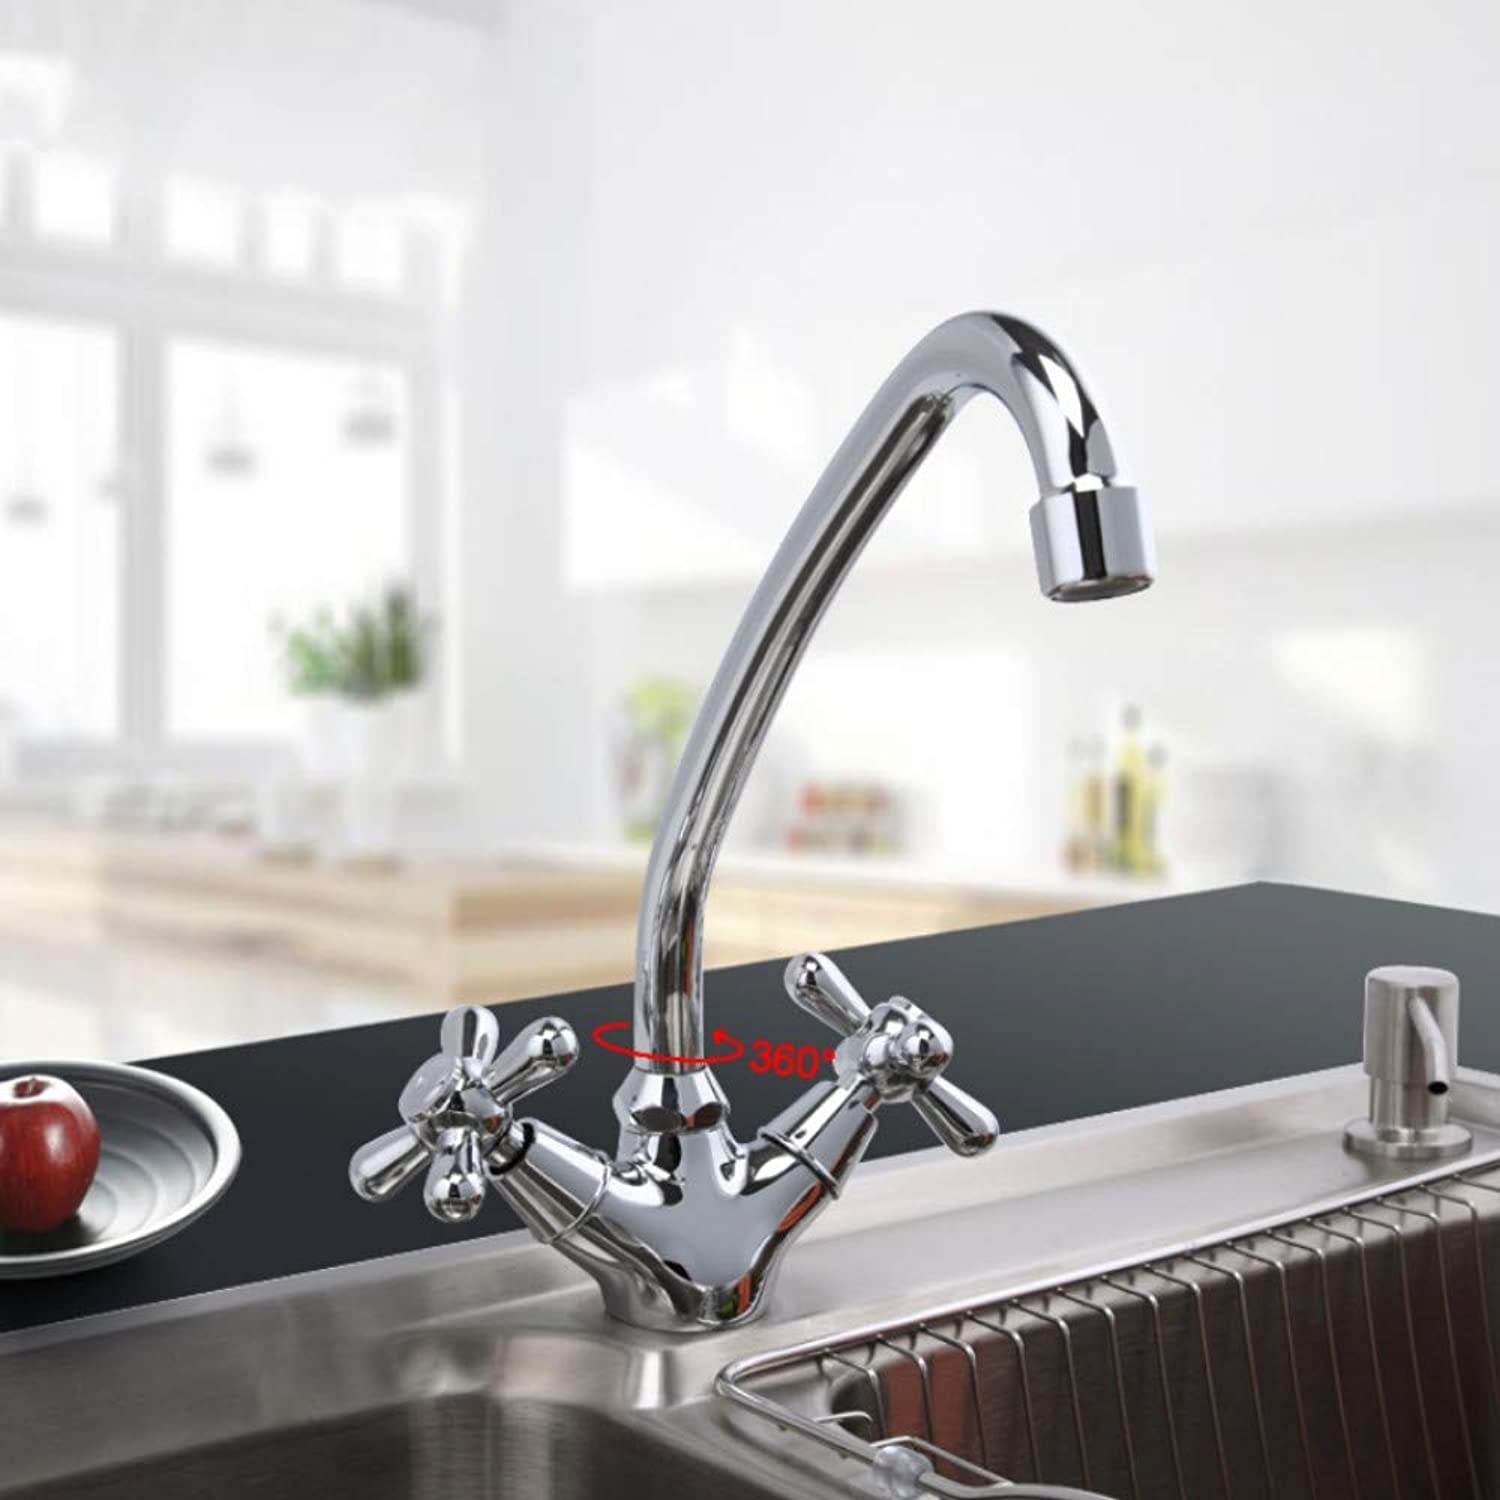 Mzdpp 1 Set Modern Style Deck Mounted Brass Solid Kitchen Faucet Chrome Finish Cold and Hot Water Mixer